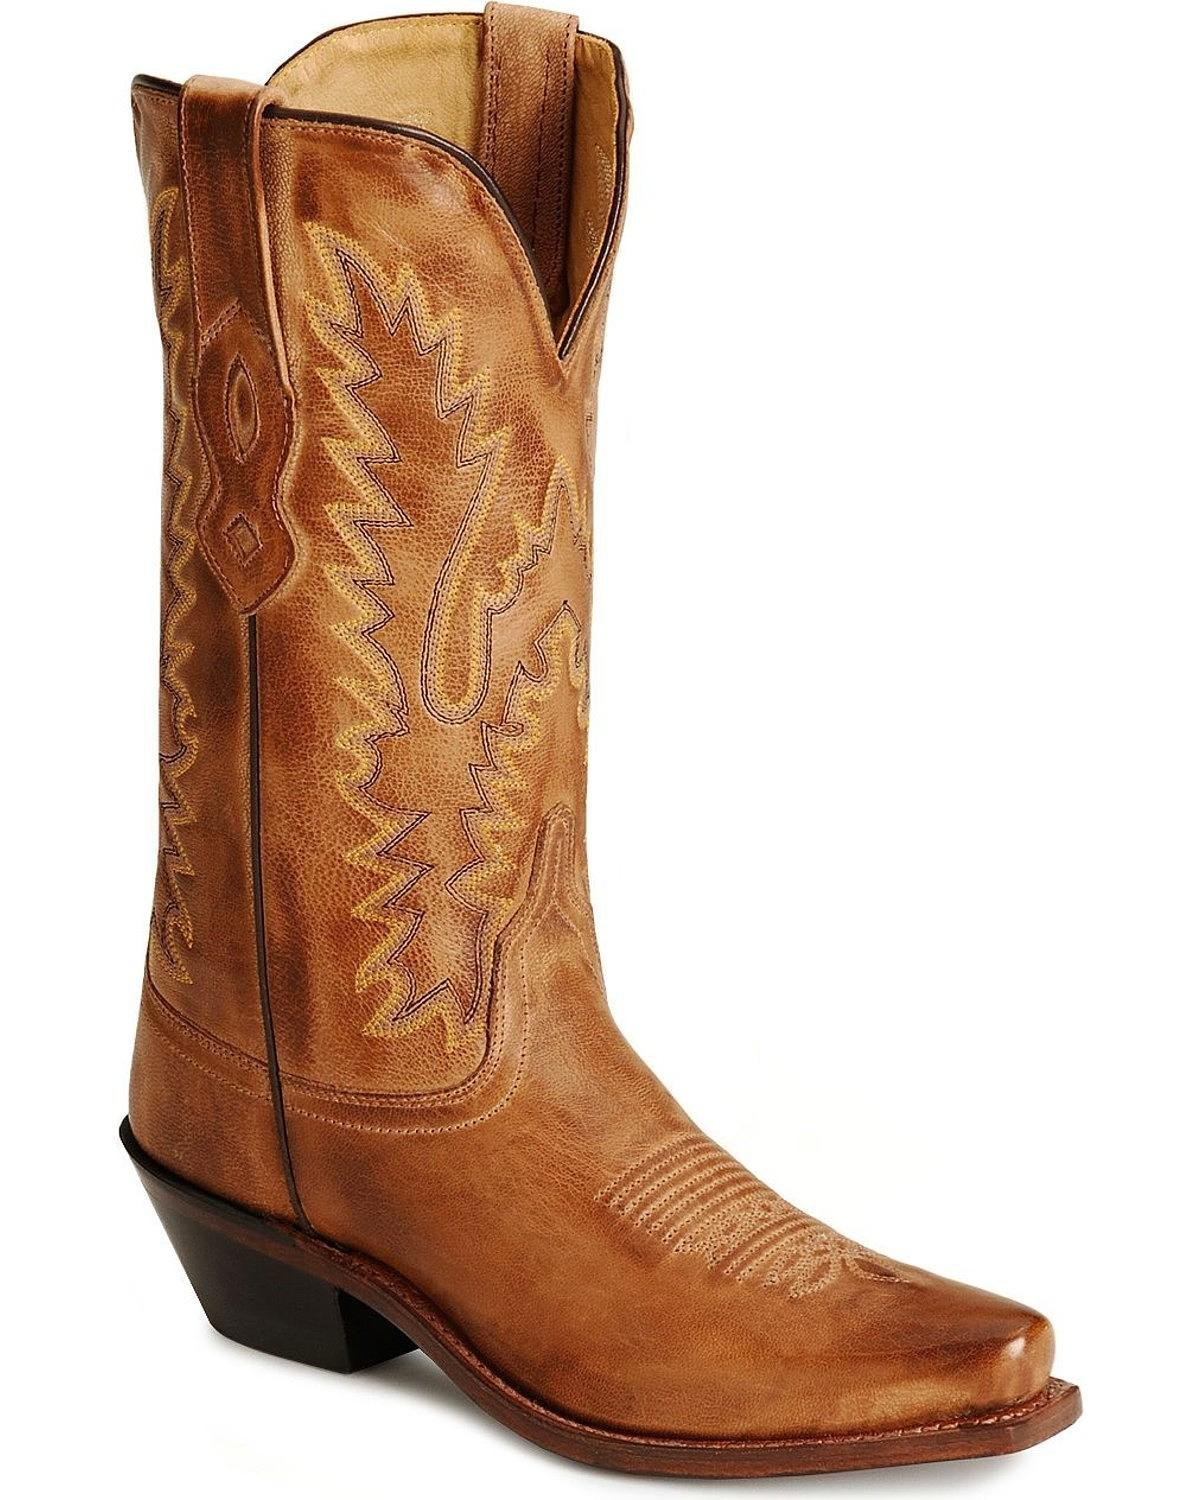 Old West Ladies Leather Fashion Cowgirl Boots B005OO25JG 5 B(M) US|Tan